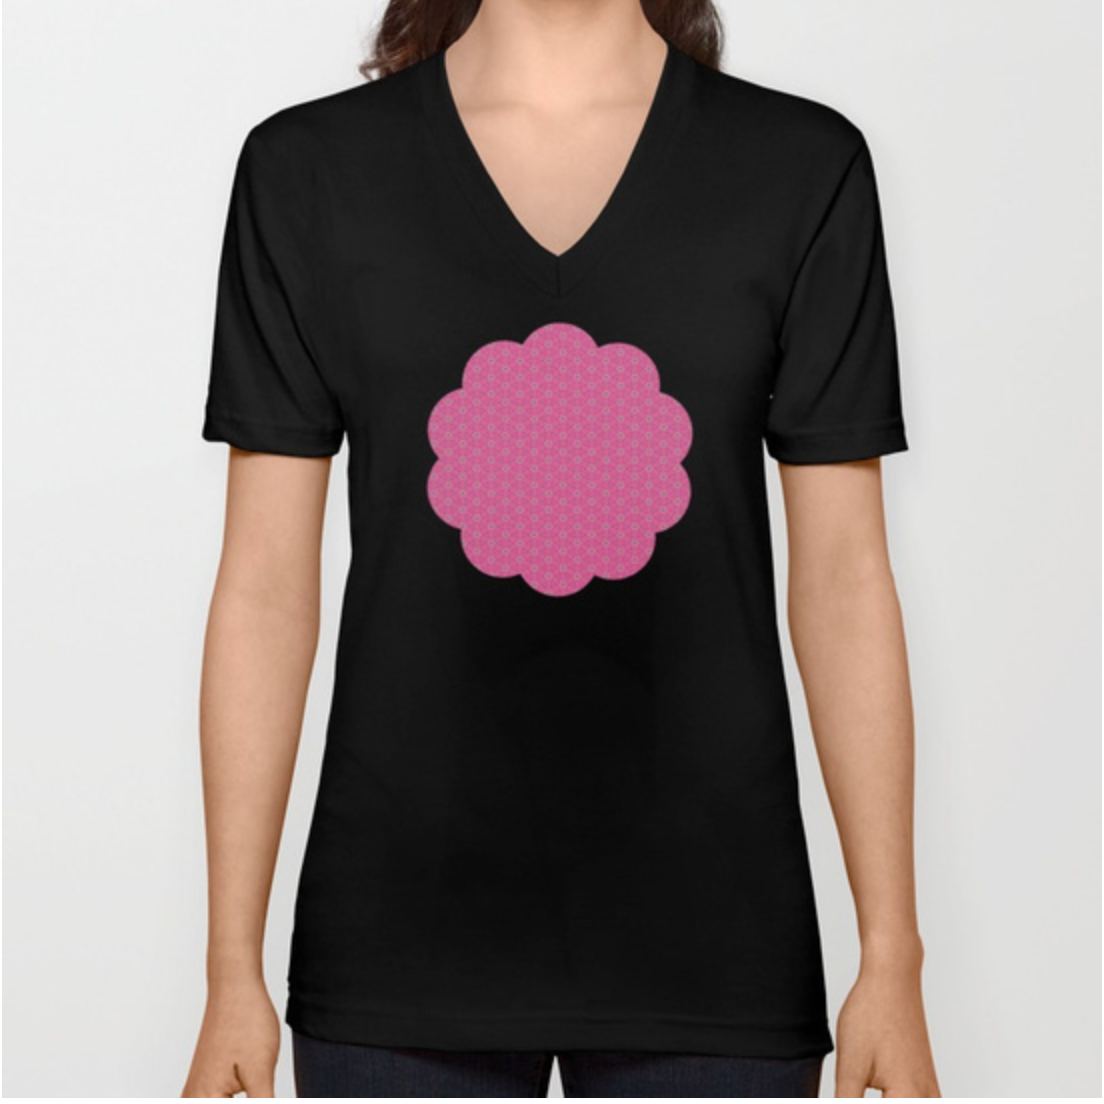 T-shirt femme by Rosa Lee Design on Society 6